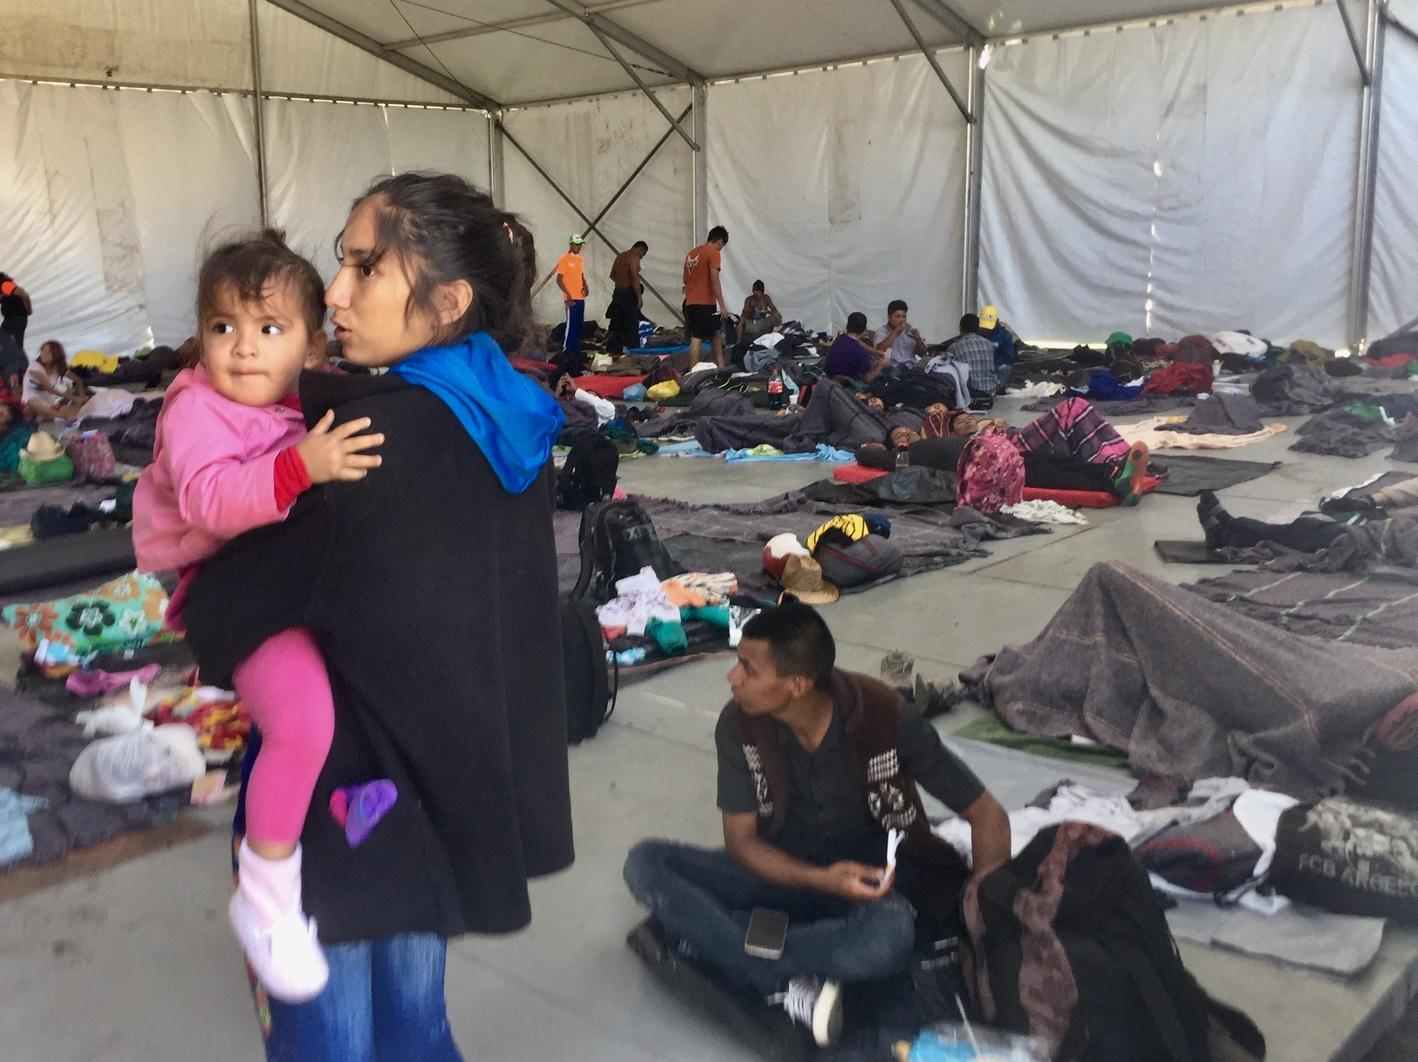 Inside one of the tents used for sheltering Central American migrants in Mexico City.